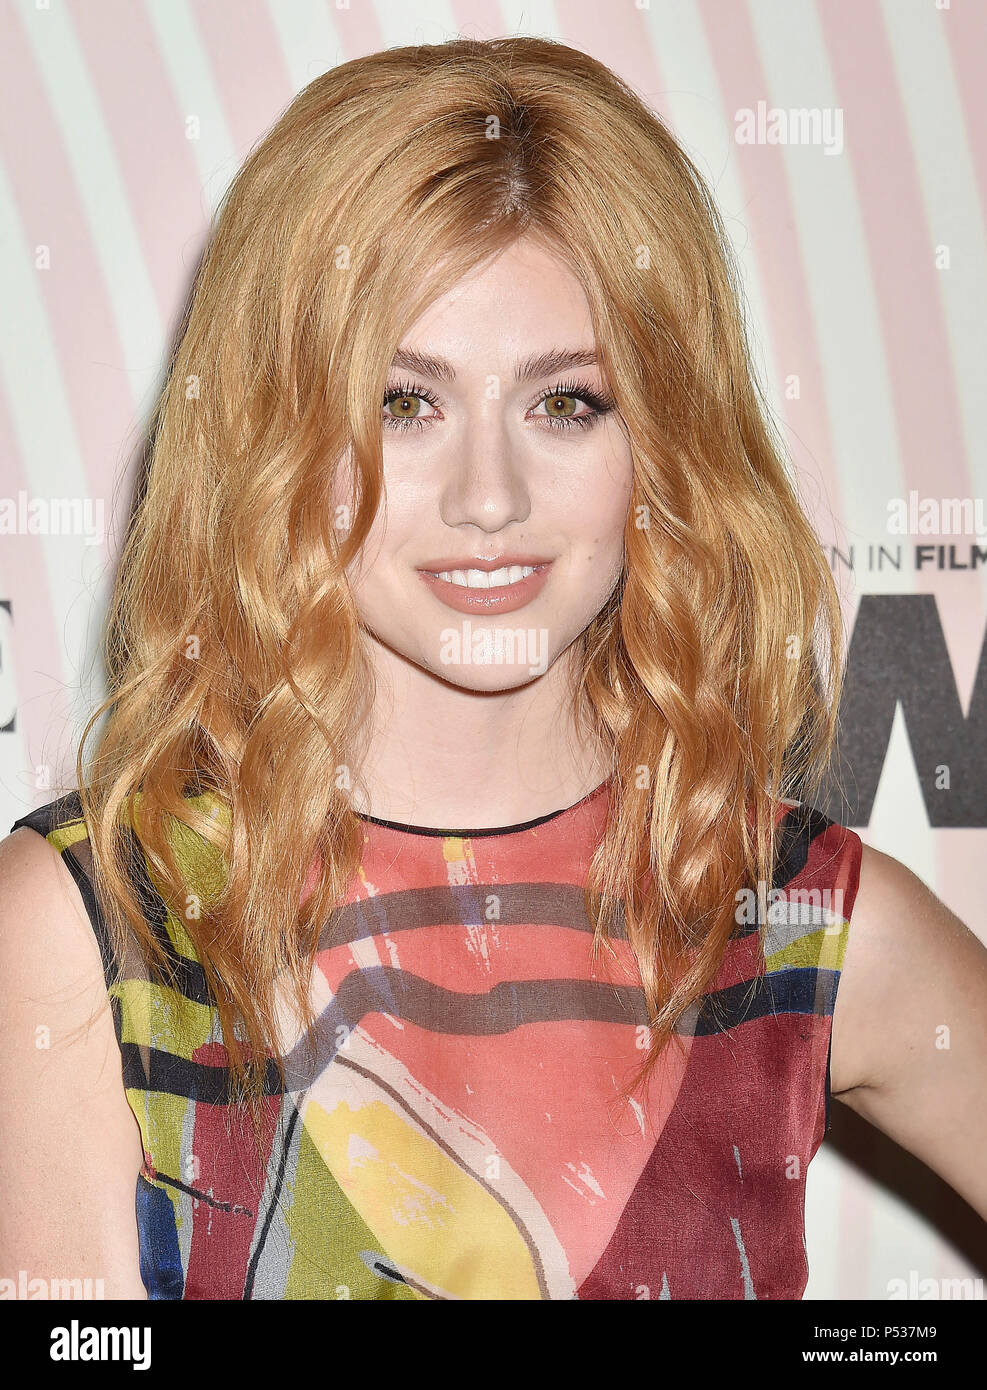 KATHERINE McNAMARA US film actress  attends the Women In Film 2018 Crystal + Lucy Awards at The Beverly Hilton Hotel on June 13, 2018 in Beverly Hills, California. Photo: Jeffrey Mayer - Stock Image